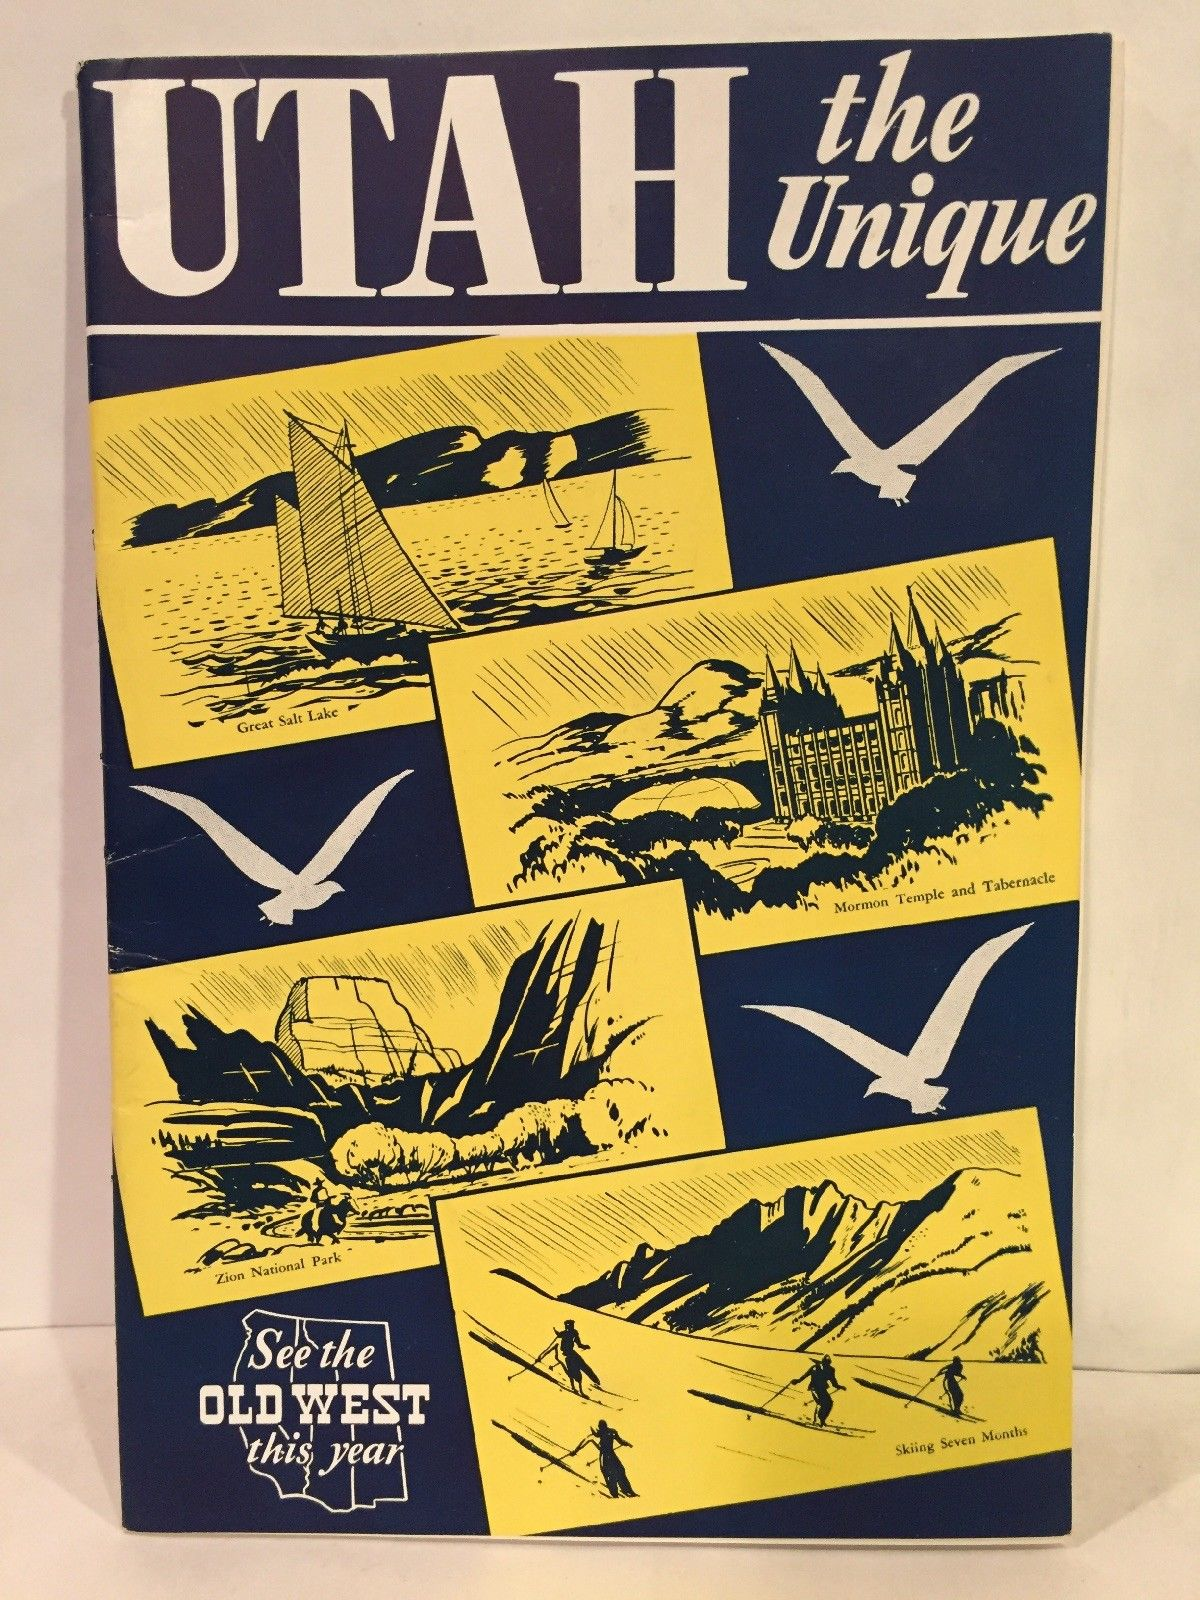 1946 Utah The Unique See the Old West Travel Brochure Booklet 32 pages EX  COND